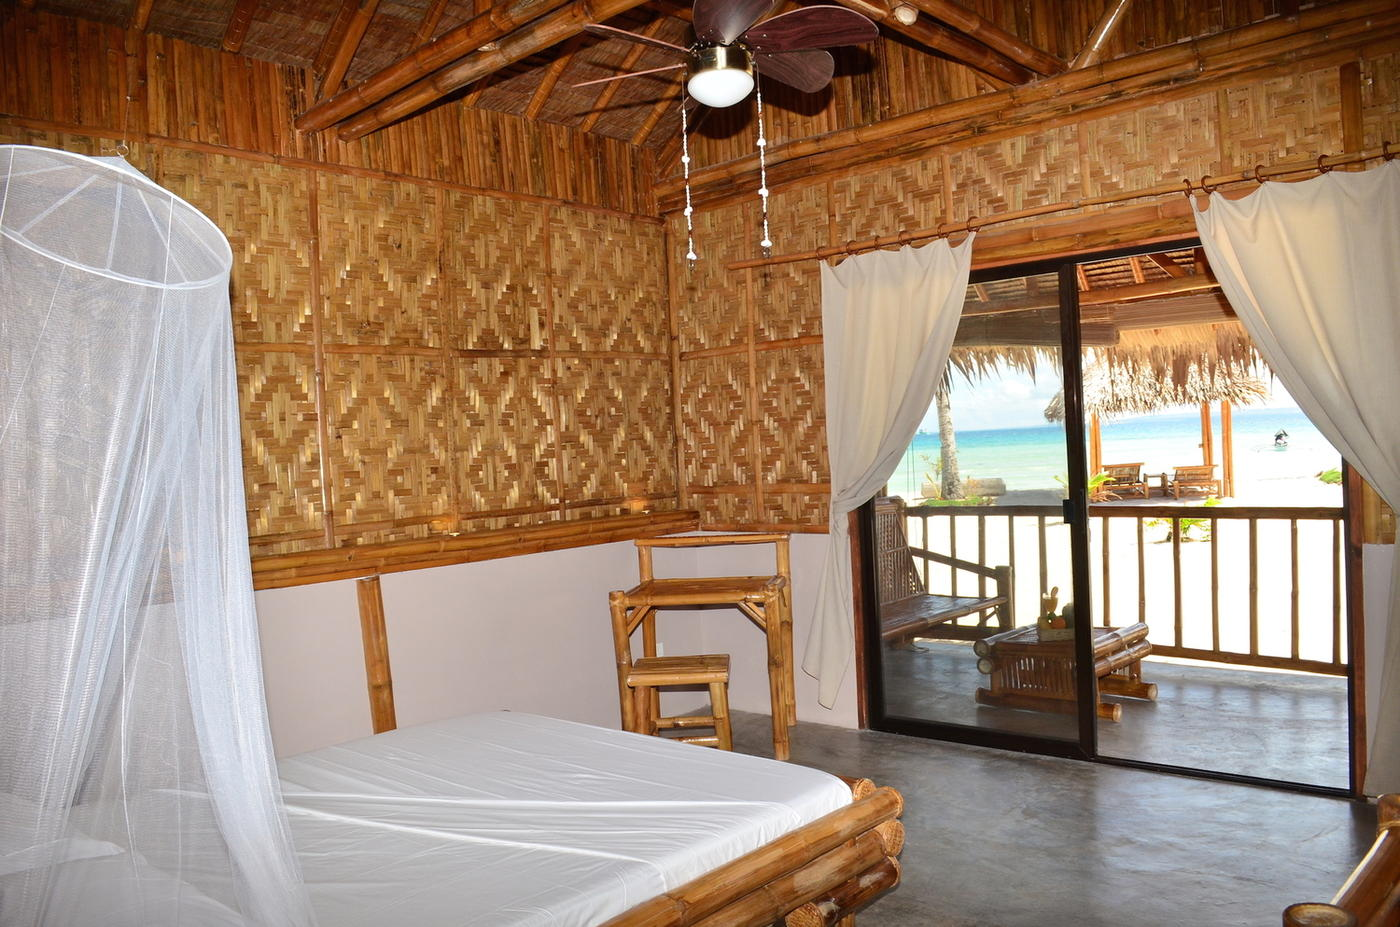 Room Interior, Amihan Beach Cabanas